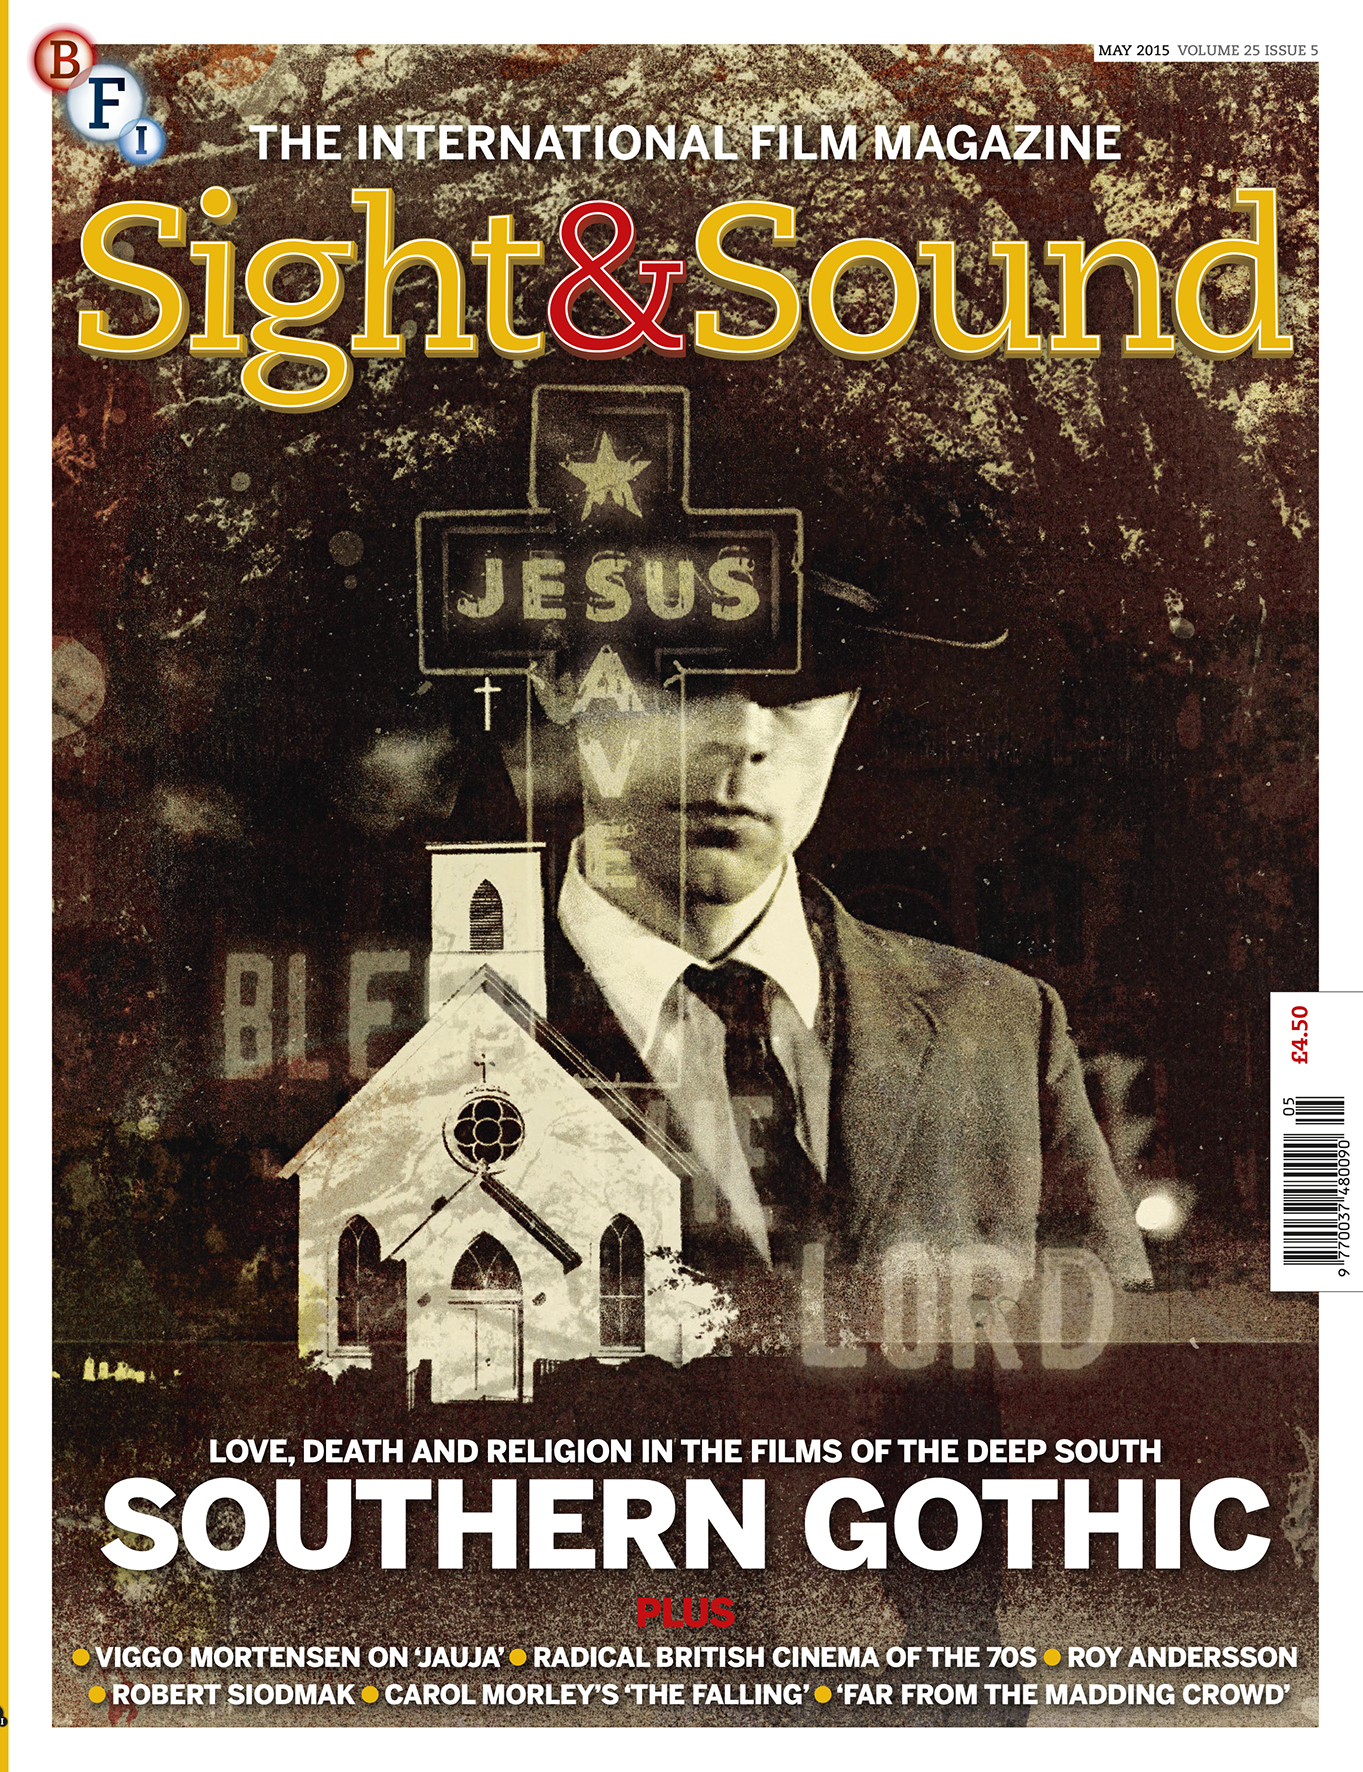 Southern Gothic / Sight & Sound